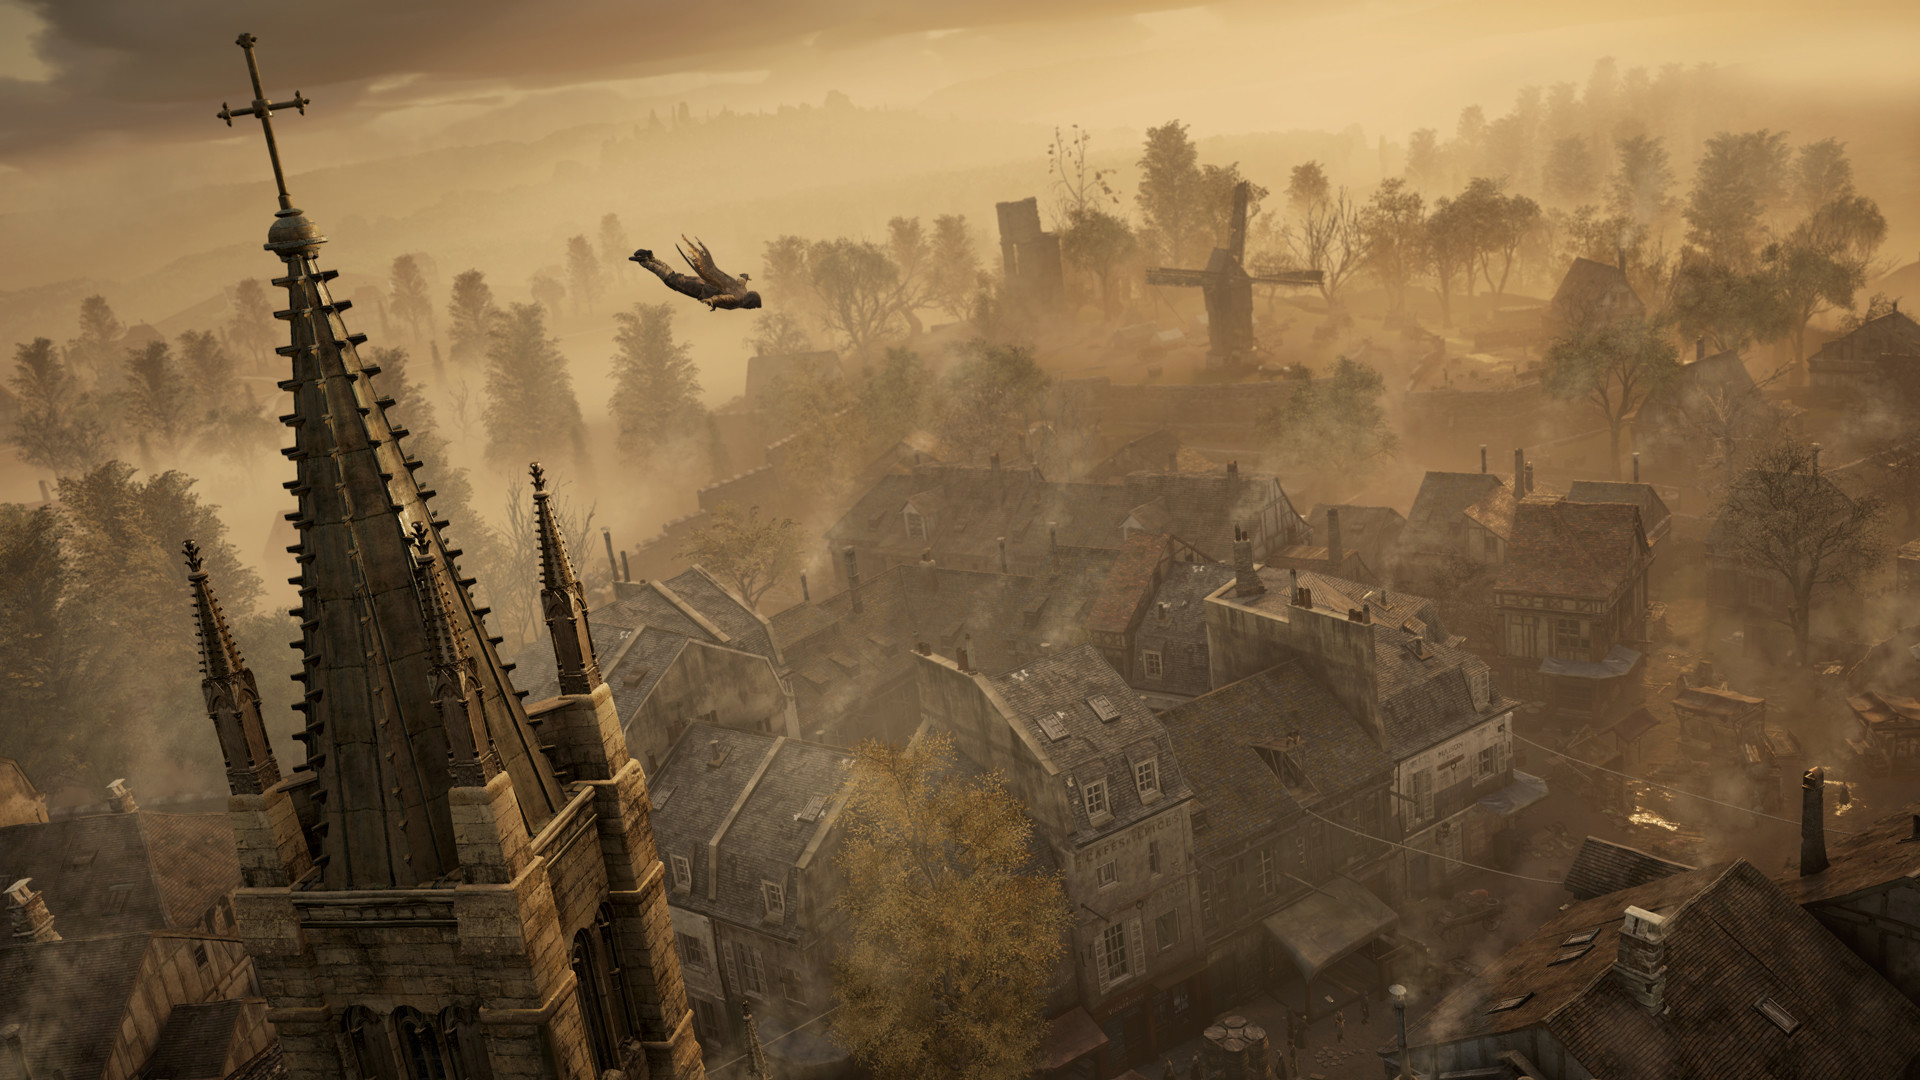 Grim looking Assassin's Creed Unity: Dead Kings DLC Screenshots and Concept  Art Revealed